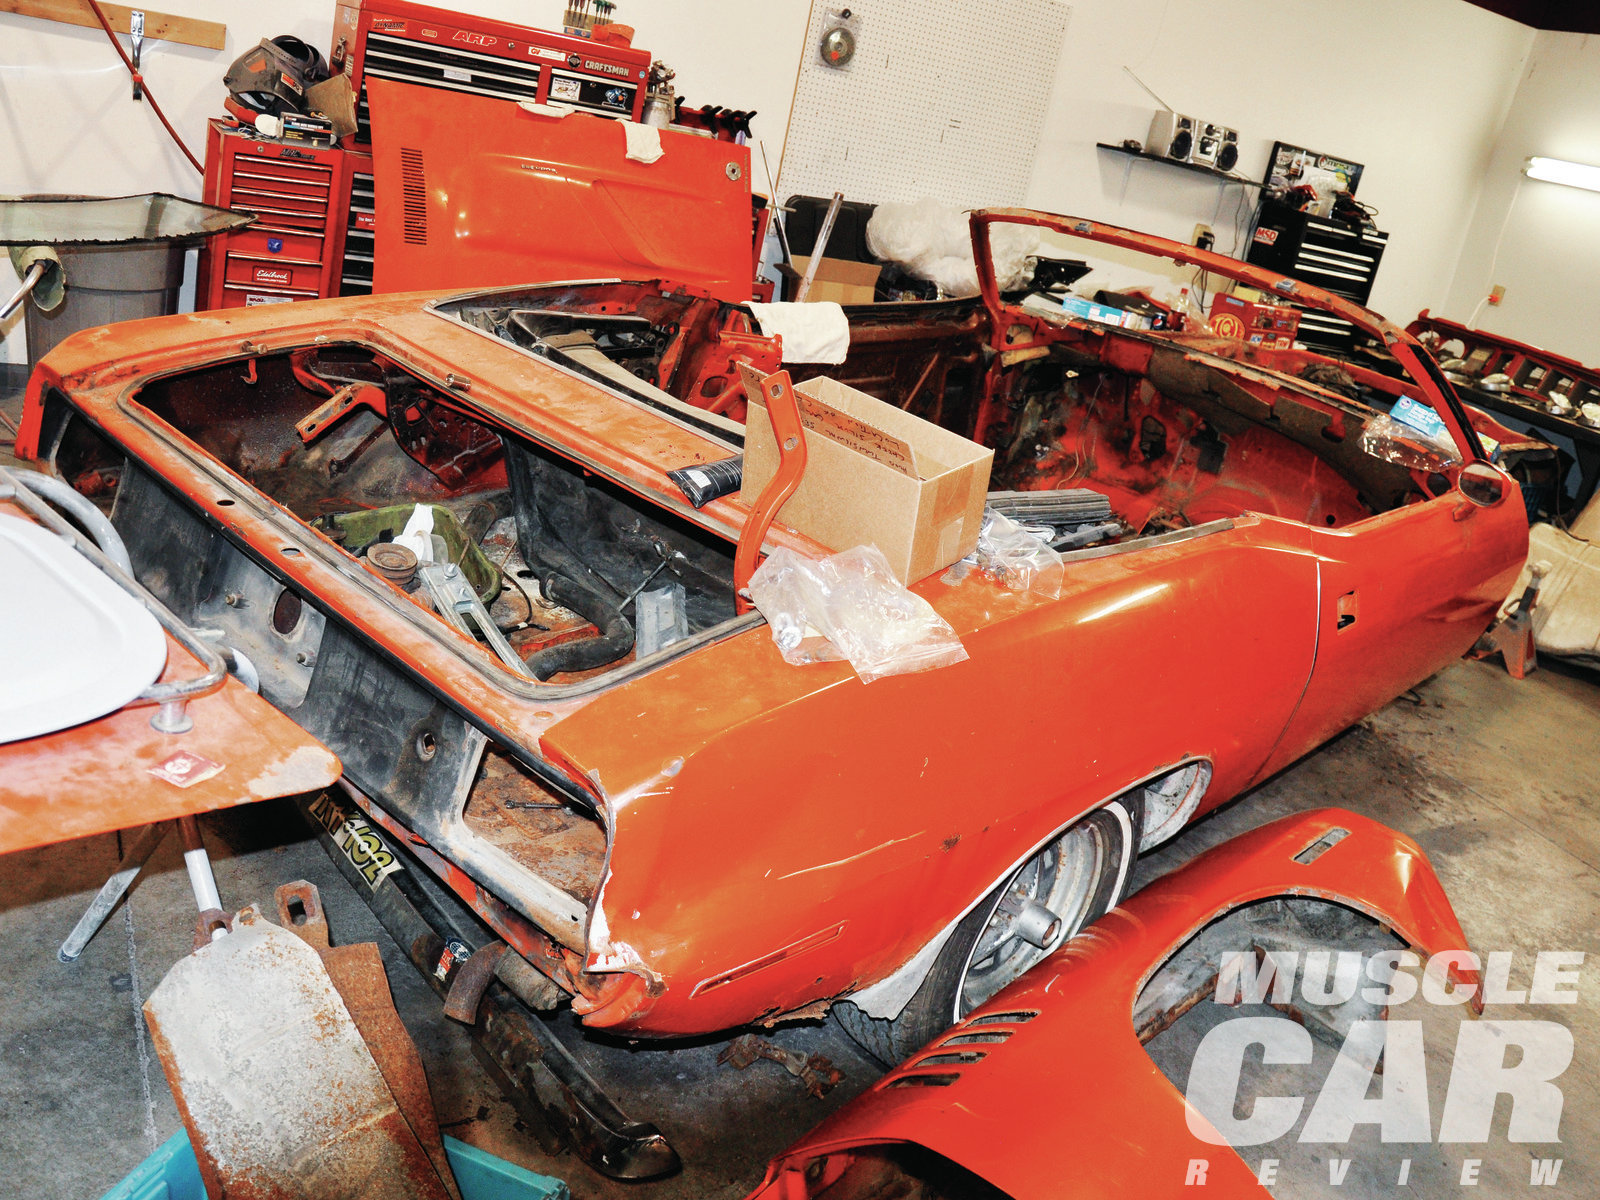 A multimillion-dollar Hemi 'Cuda or a more pedestrian Barracuda? Authenticating a muscle car, especially a potentially valuable one, is a must before undertaking a high-dollar restoration.